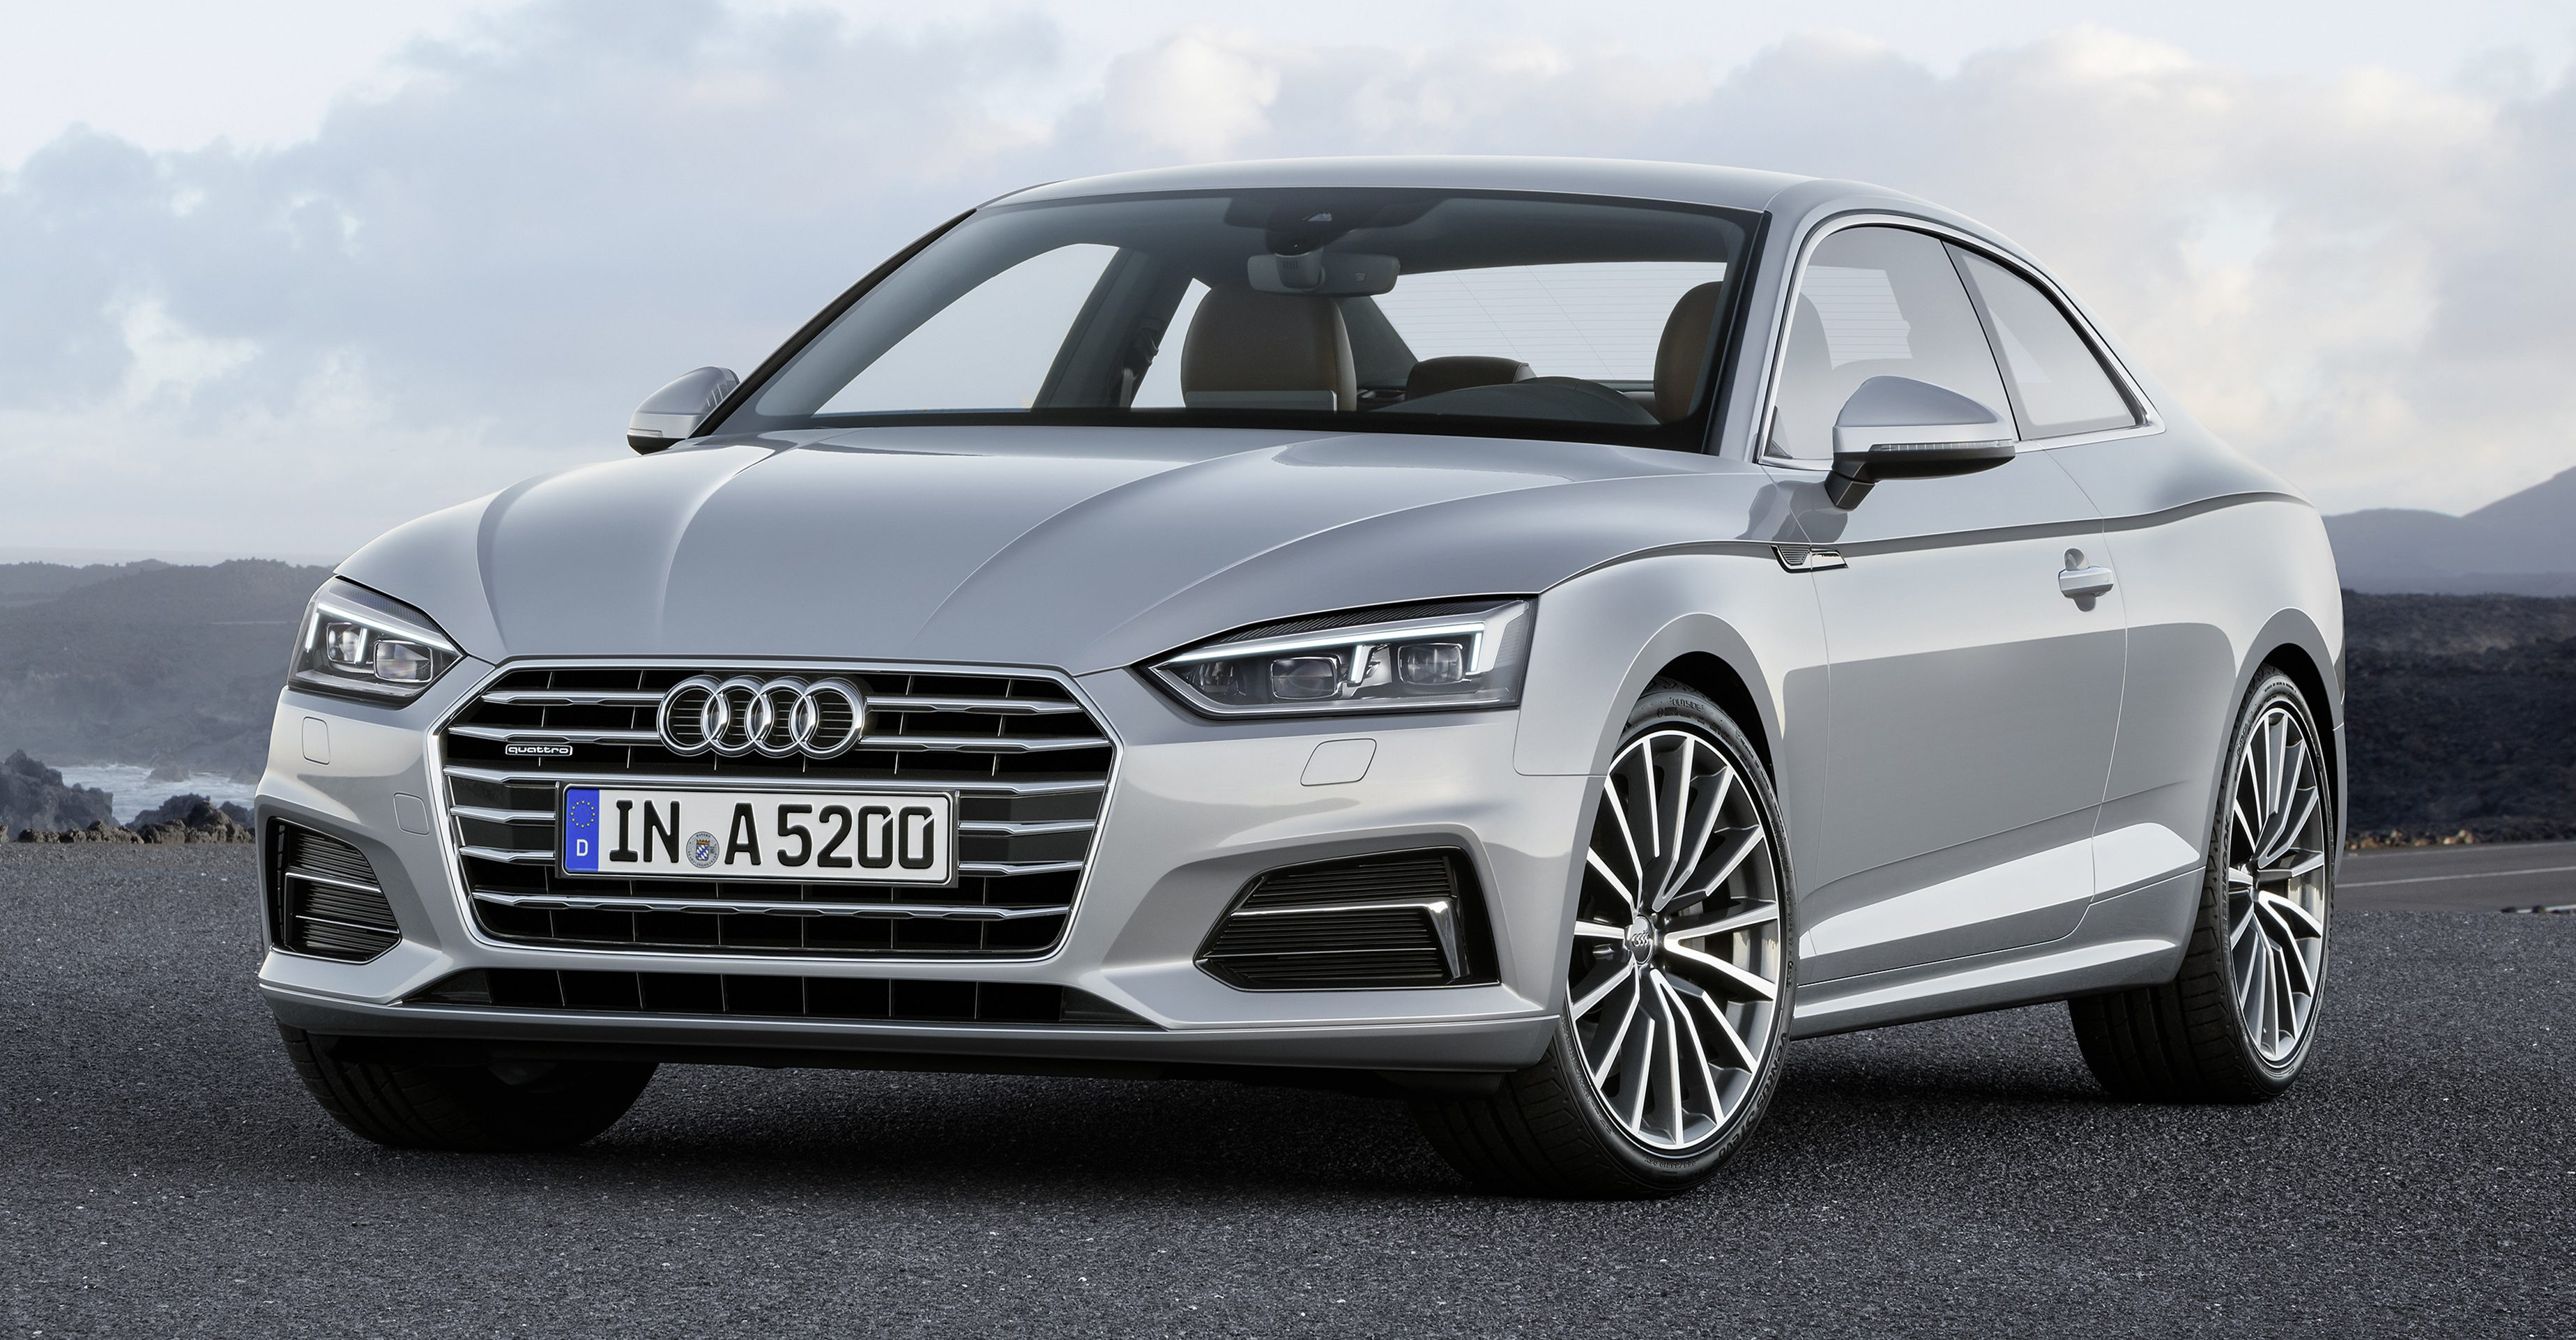 Back to Story: 2017 Audi A5 and S5 Coupé – all-new under the skin